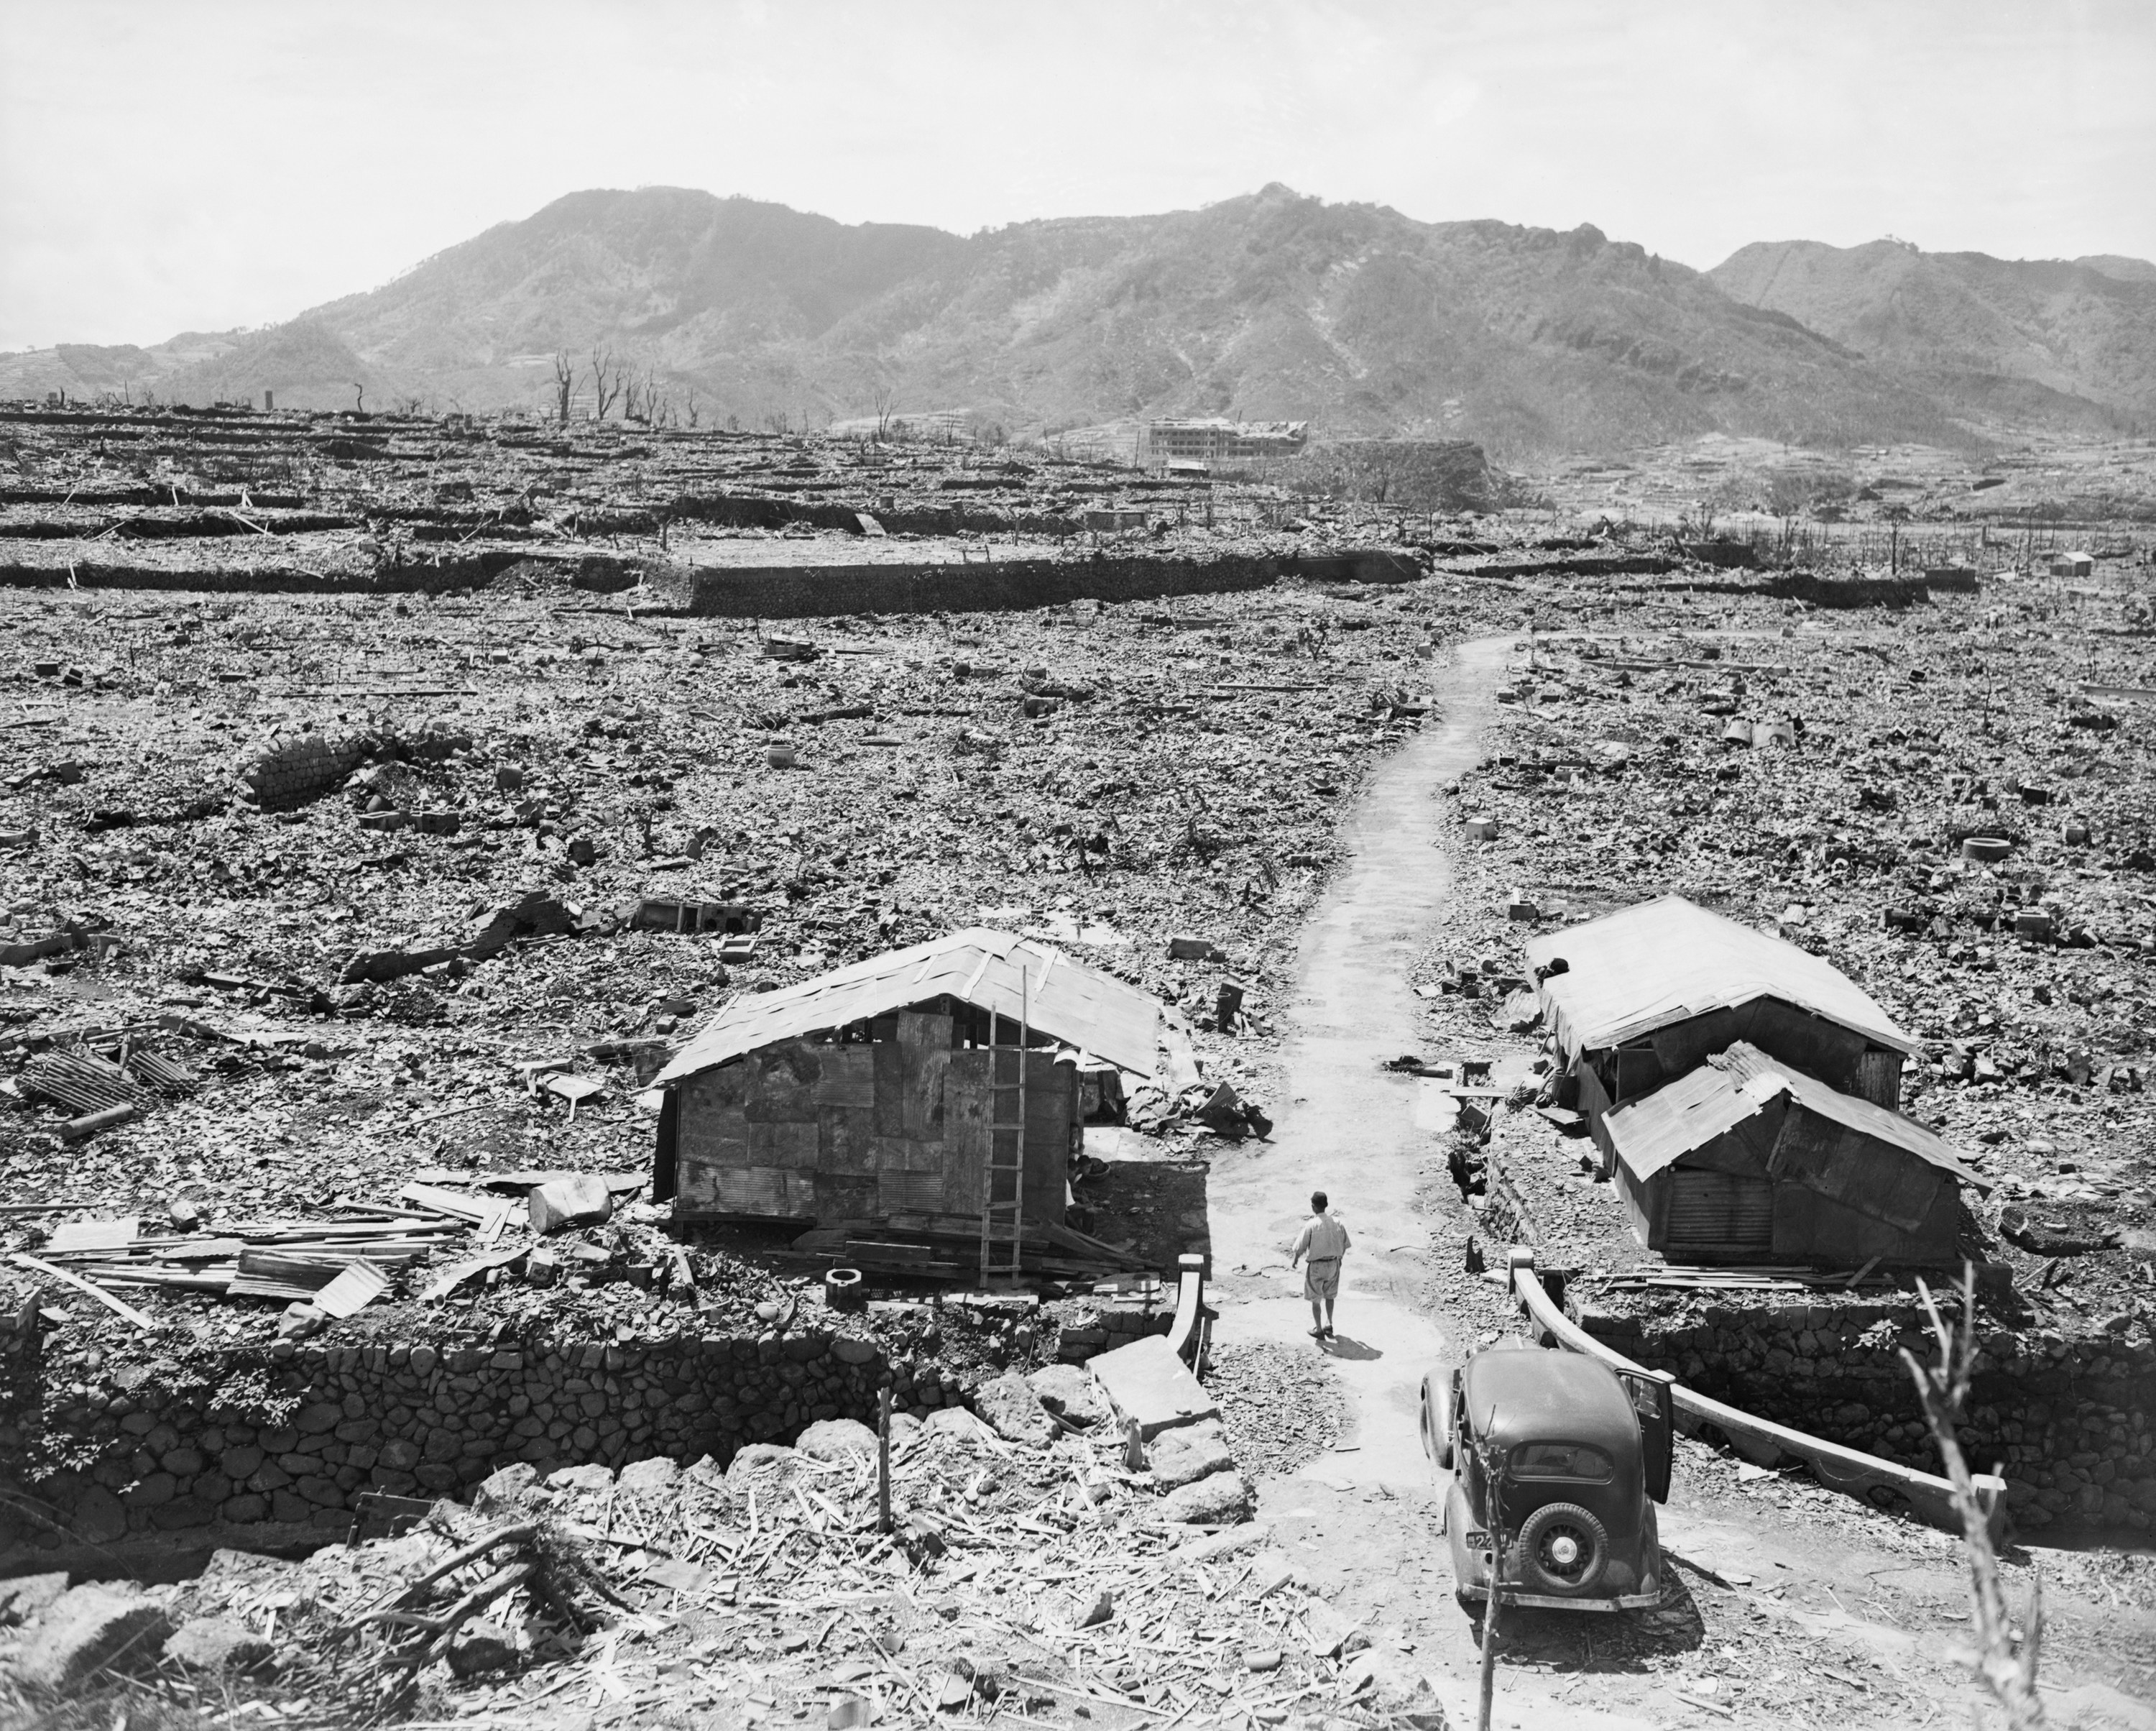 A man walks away from a car and toward a lone building standing amid rubble in a destroyed valley